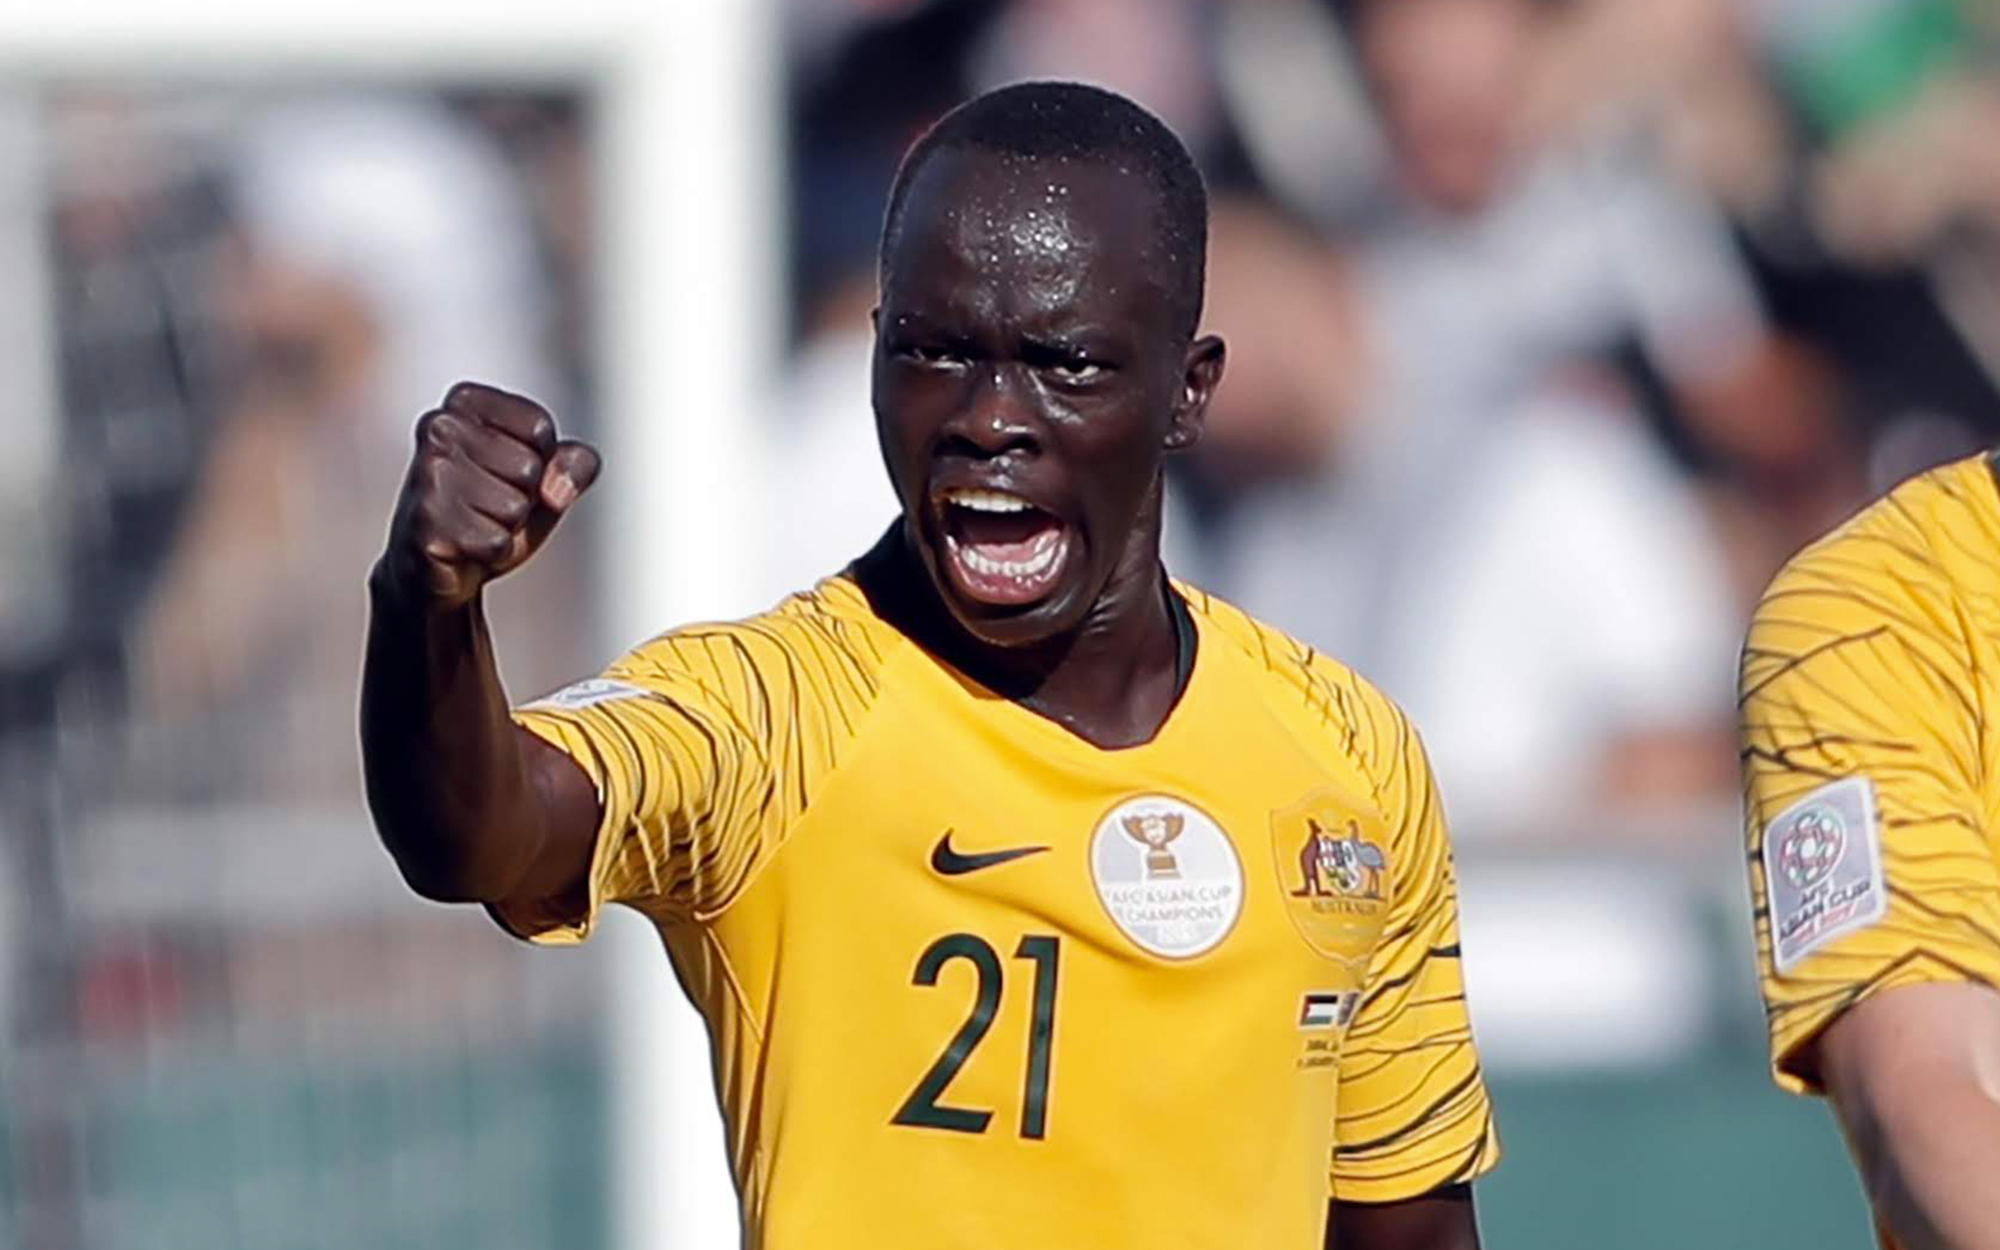 'Time to chase that childhood dream': Mabil on cusp of UEFA Champions League